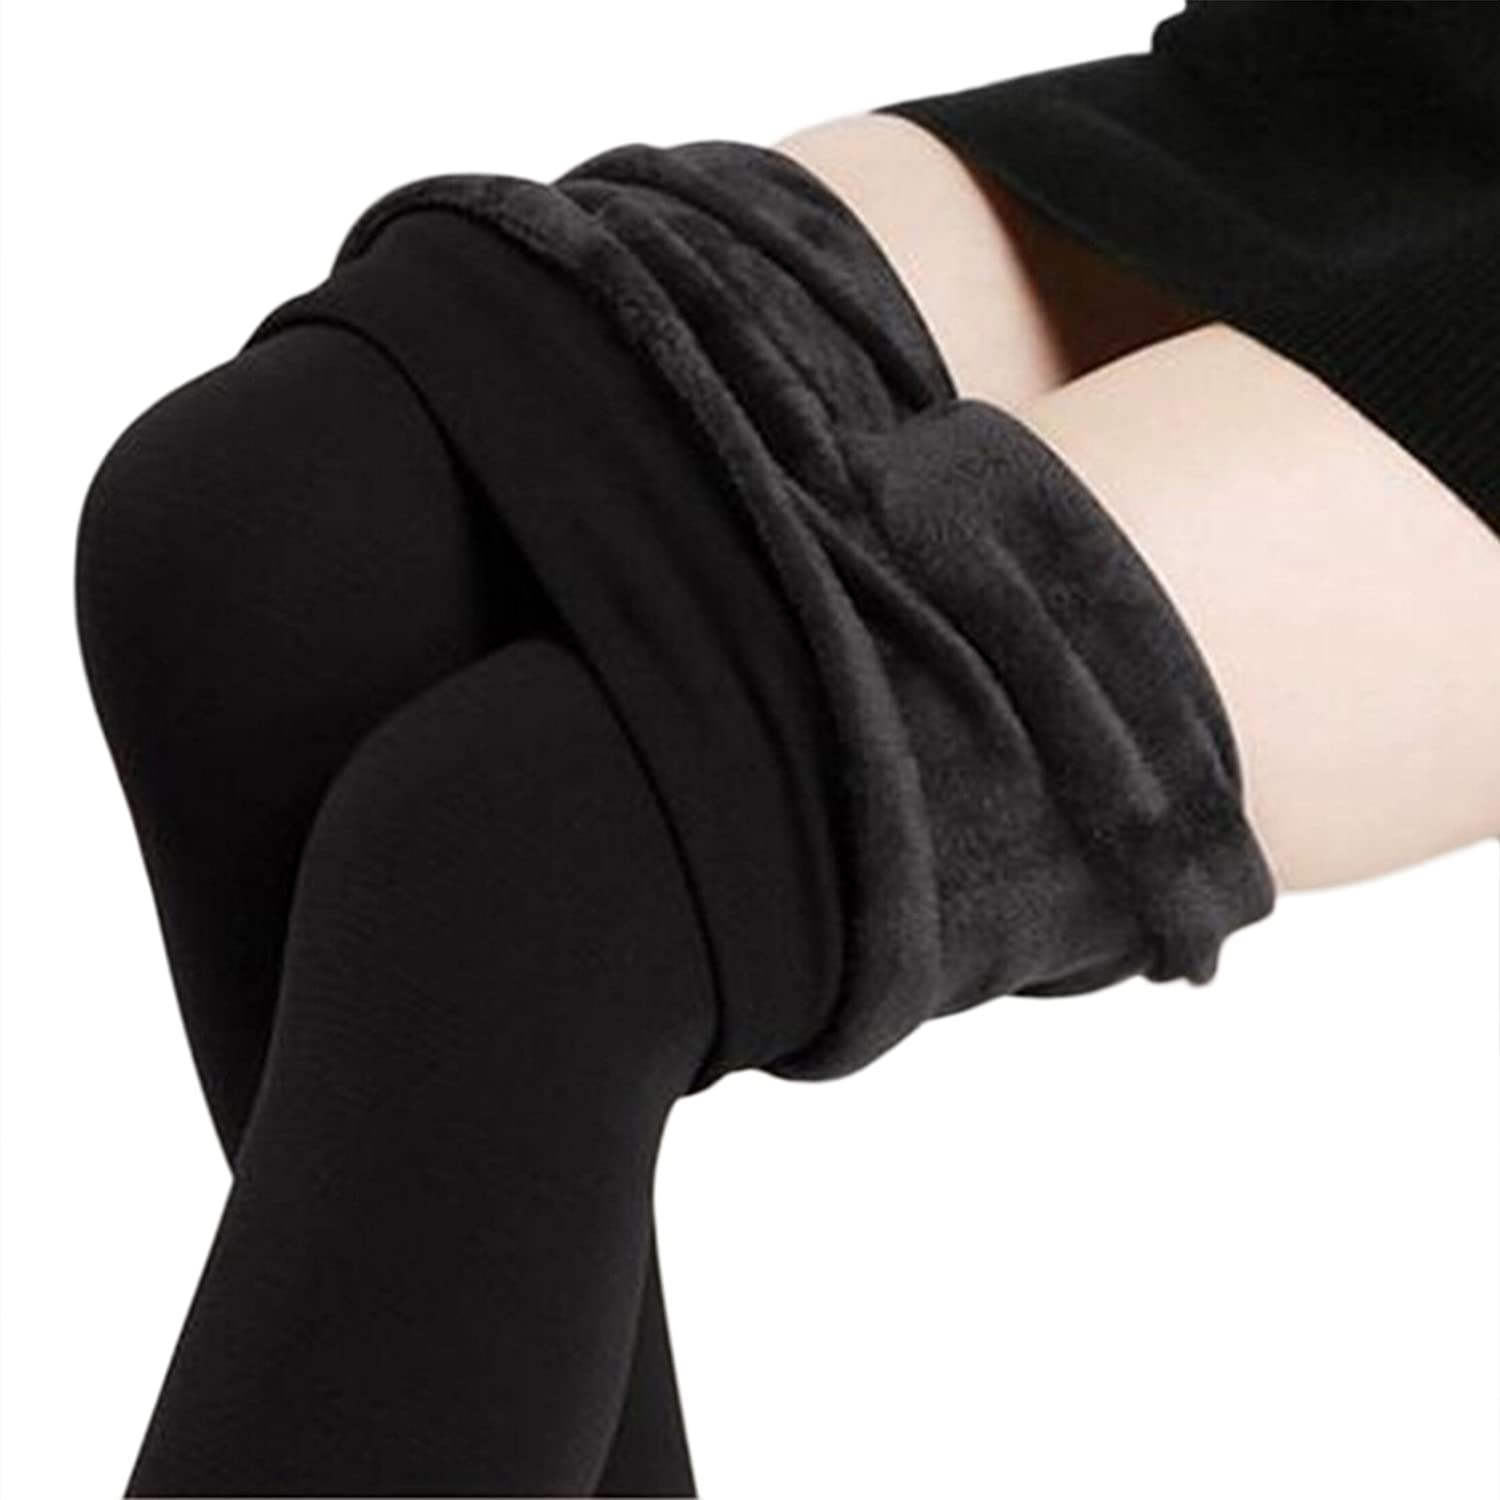 Women's Winter Thick Warm Fleece Lined Thermal Stretchy Leggings ...